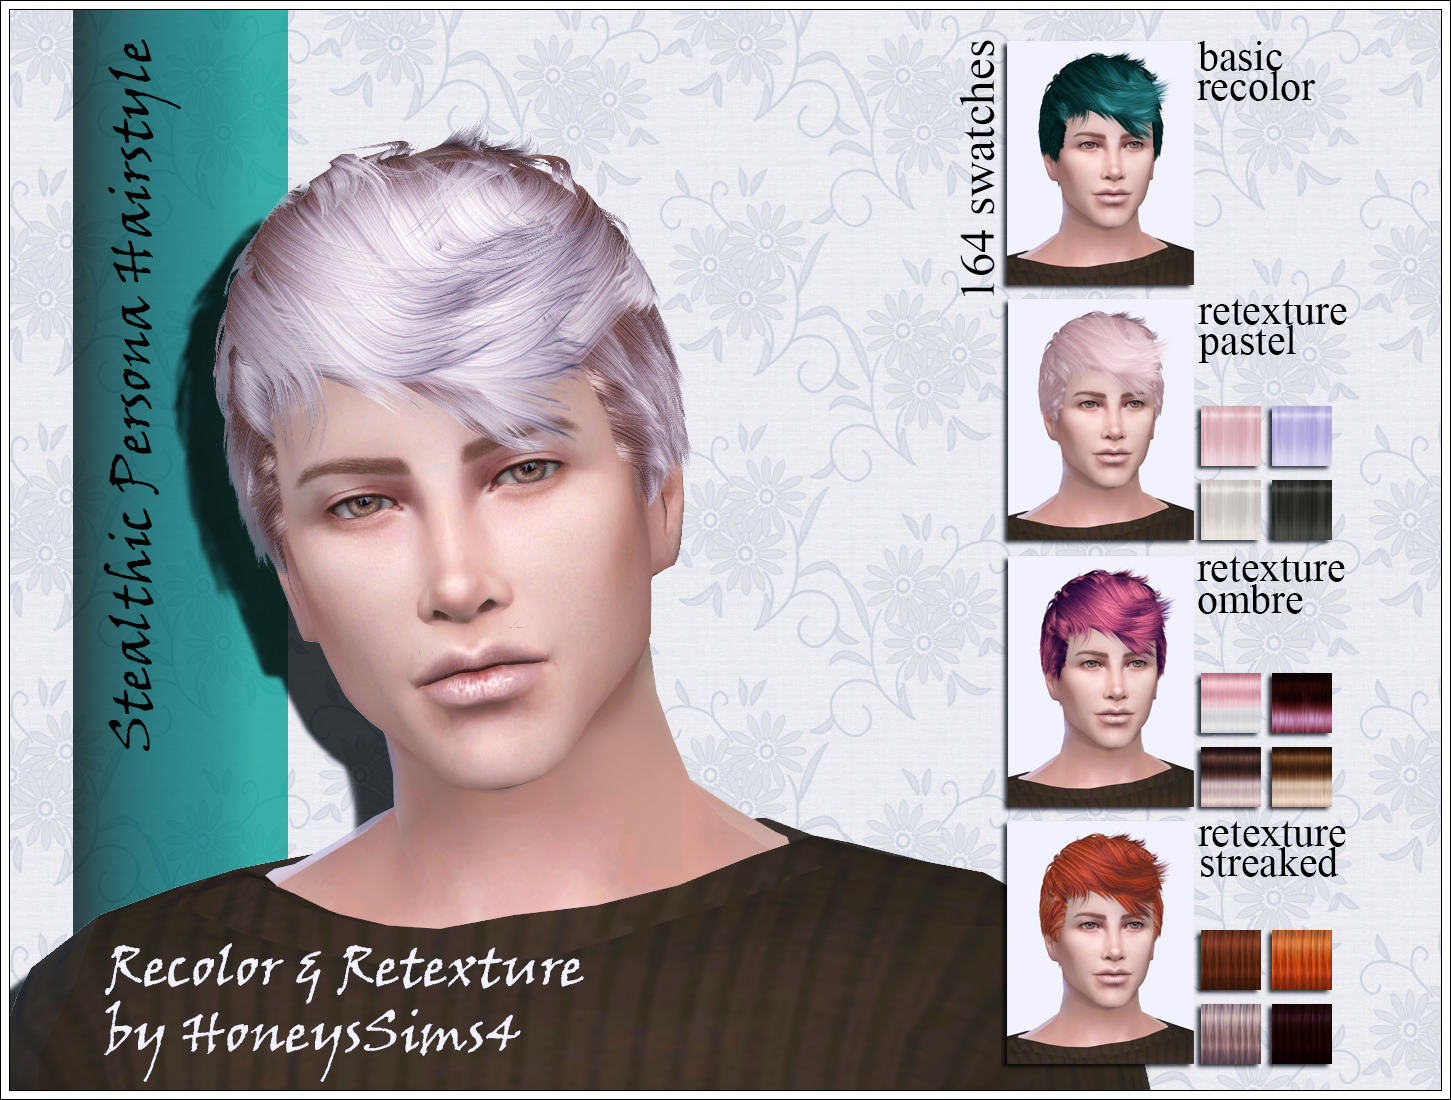 Sims 4 Male Hair Recolor Retexture By Honeyssims4 Mesh By Stealthic Sims4 Sims4hair Ts4cc Ts4hair S4hair Honeyssims T Manner Frisuren The Sims Pop Musik